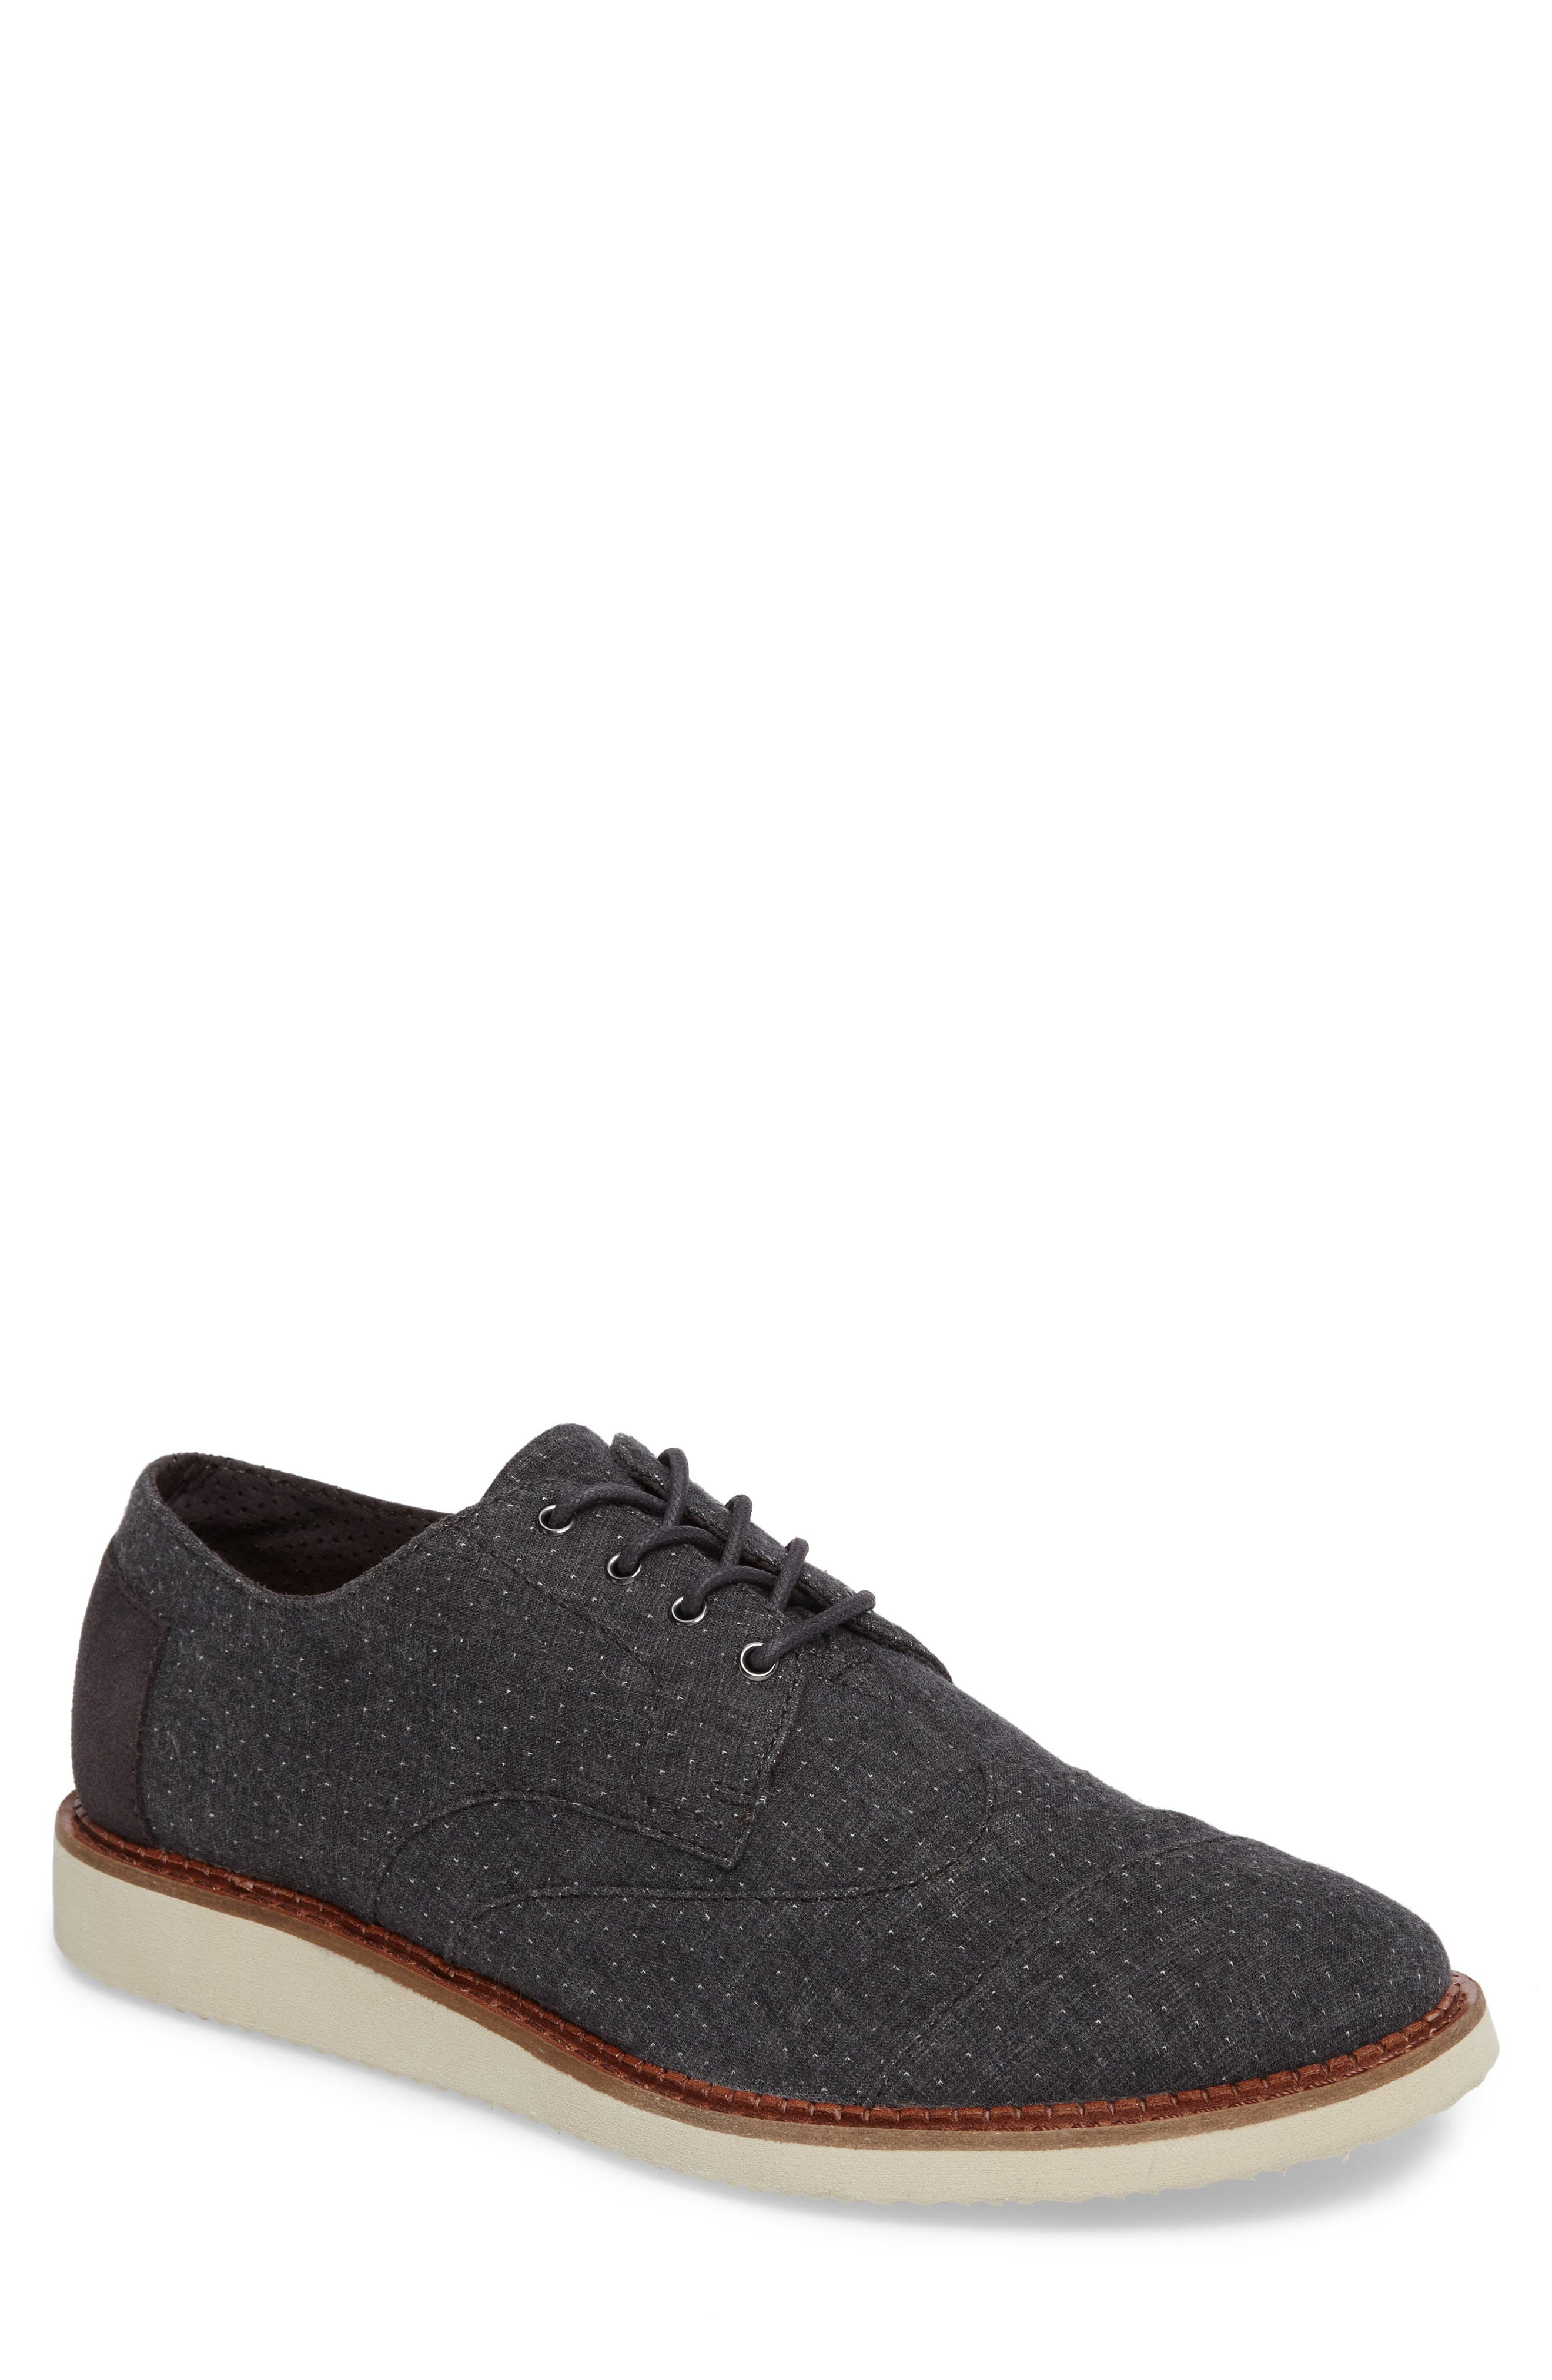 'Classic Brogue' Cotton Twill Derby,                             Main thumbnail 7, color,